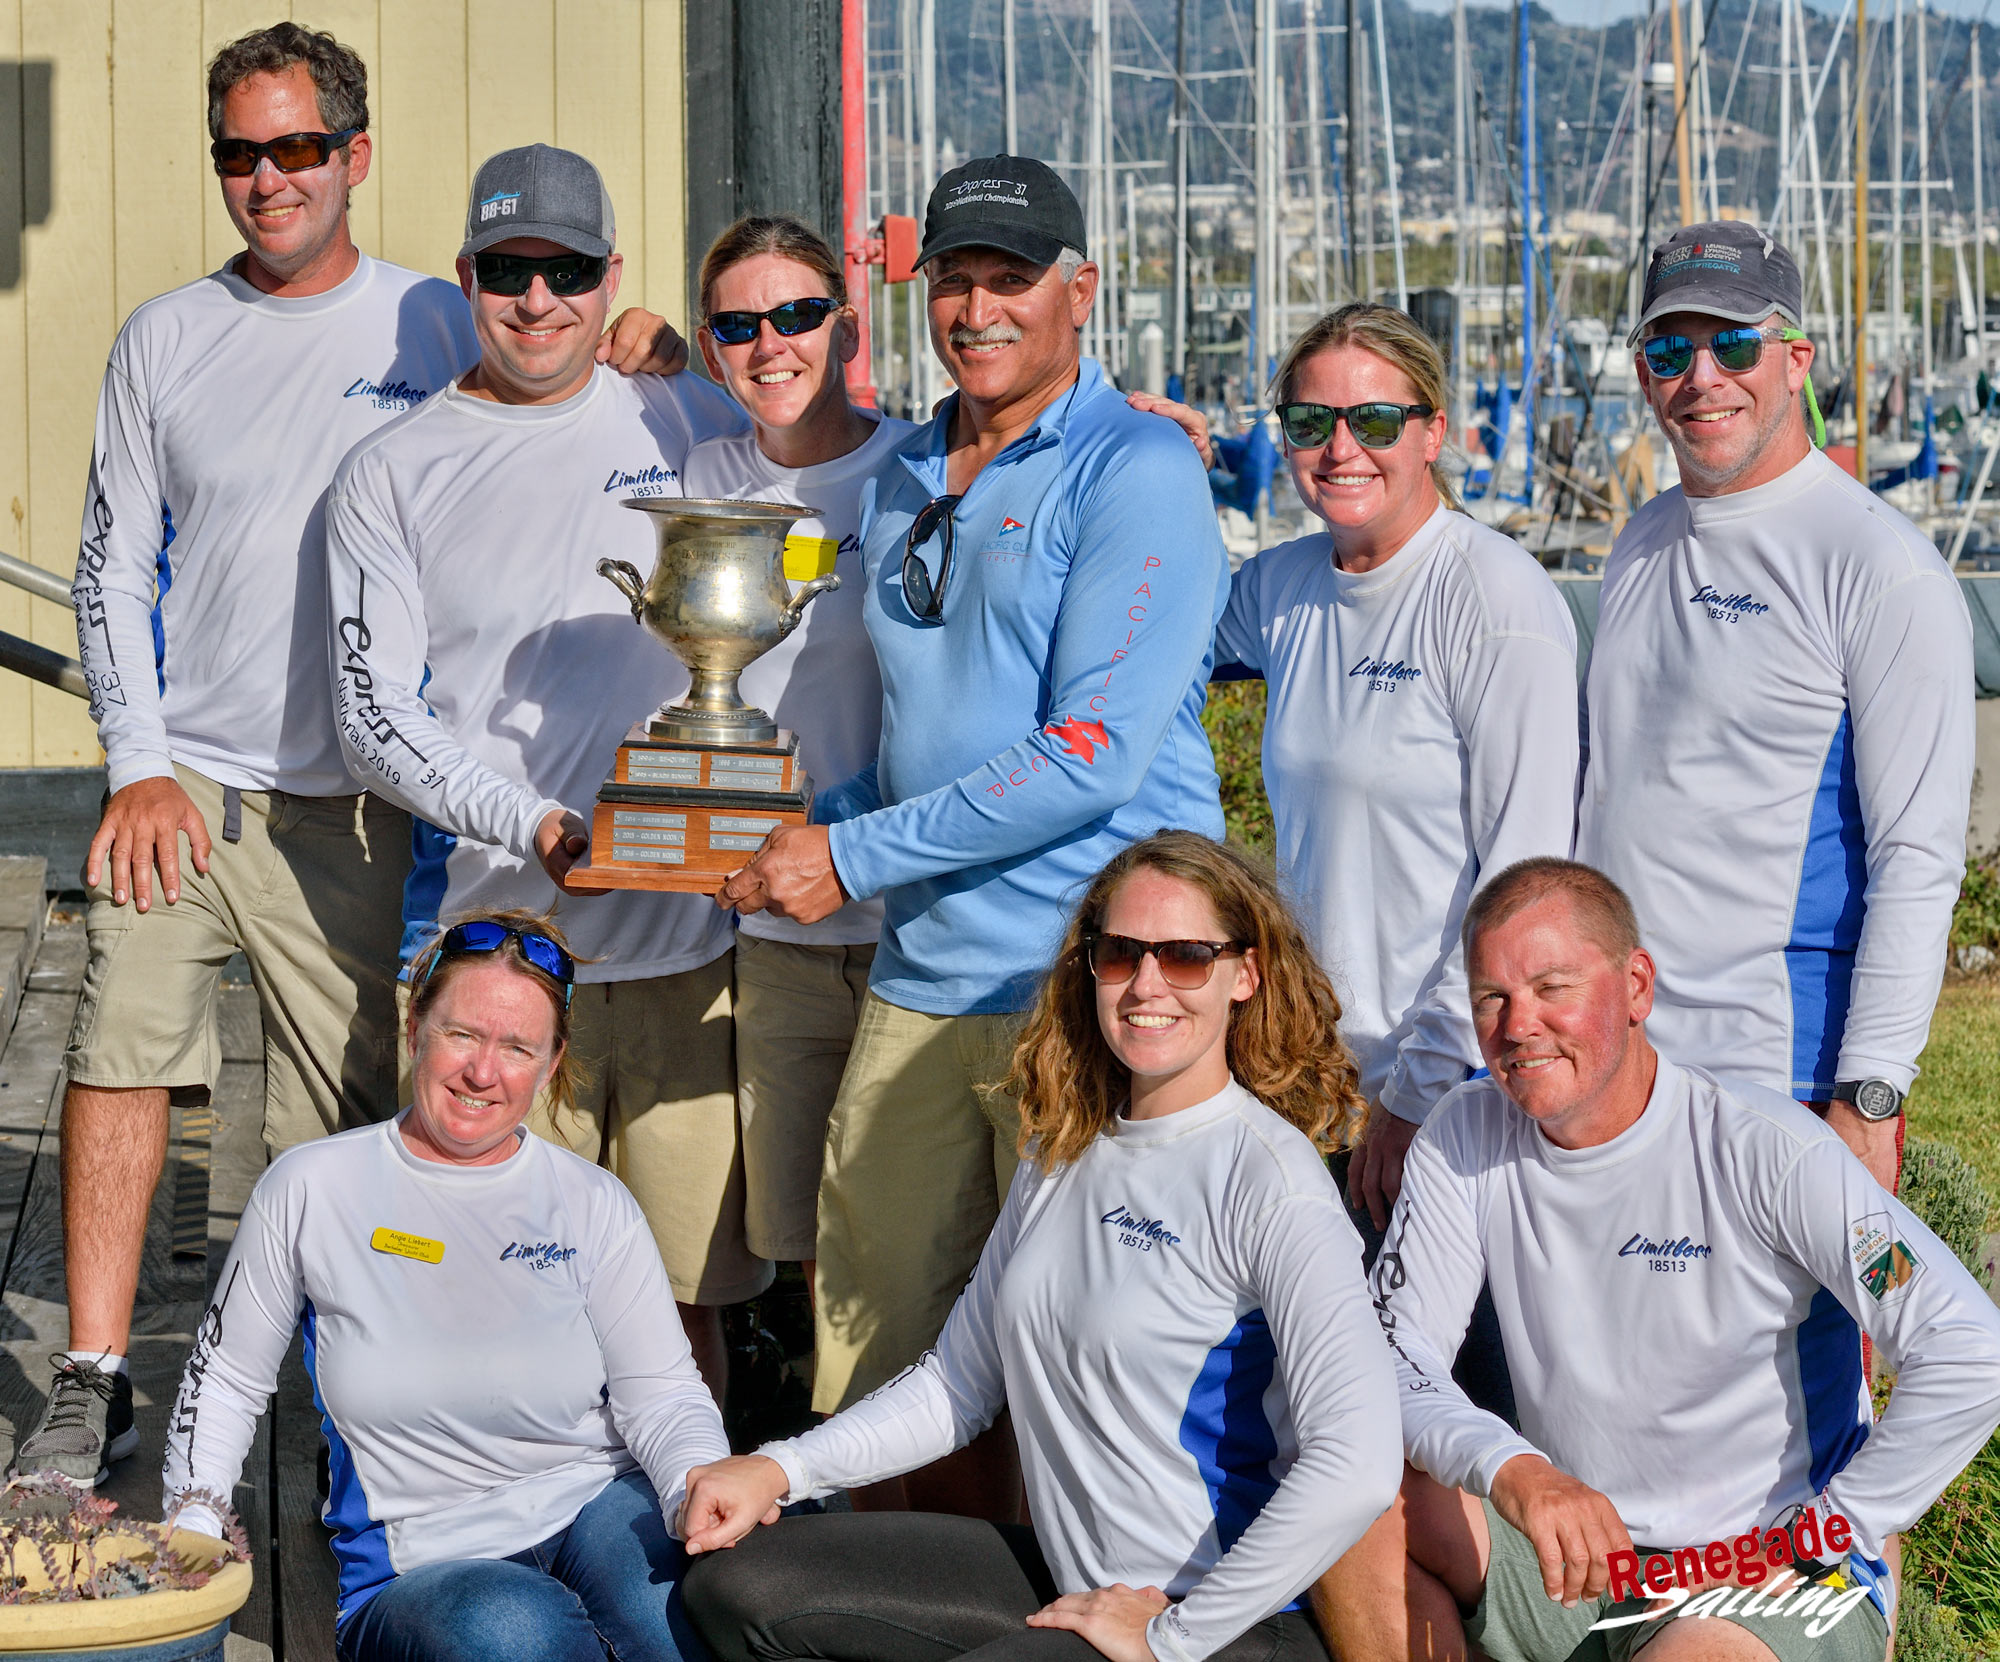 Express Nationals Champions - Shawn Ivie and crew of Limitless